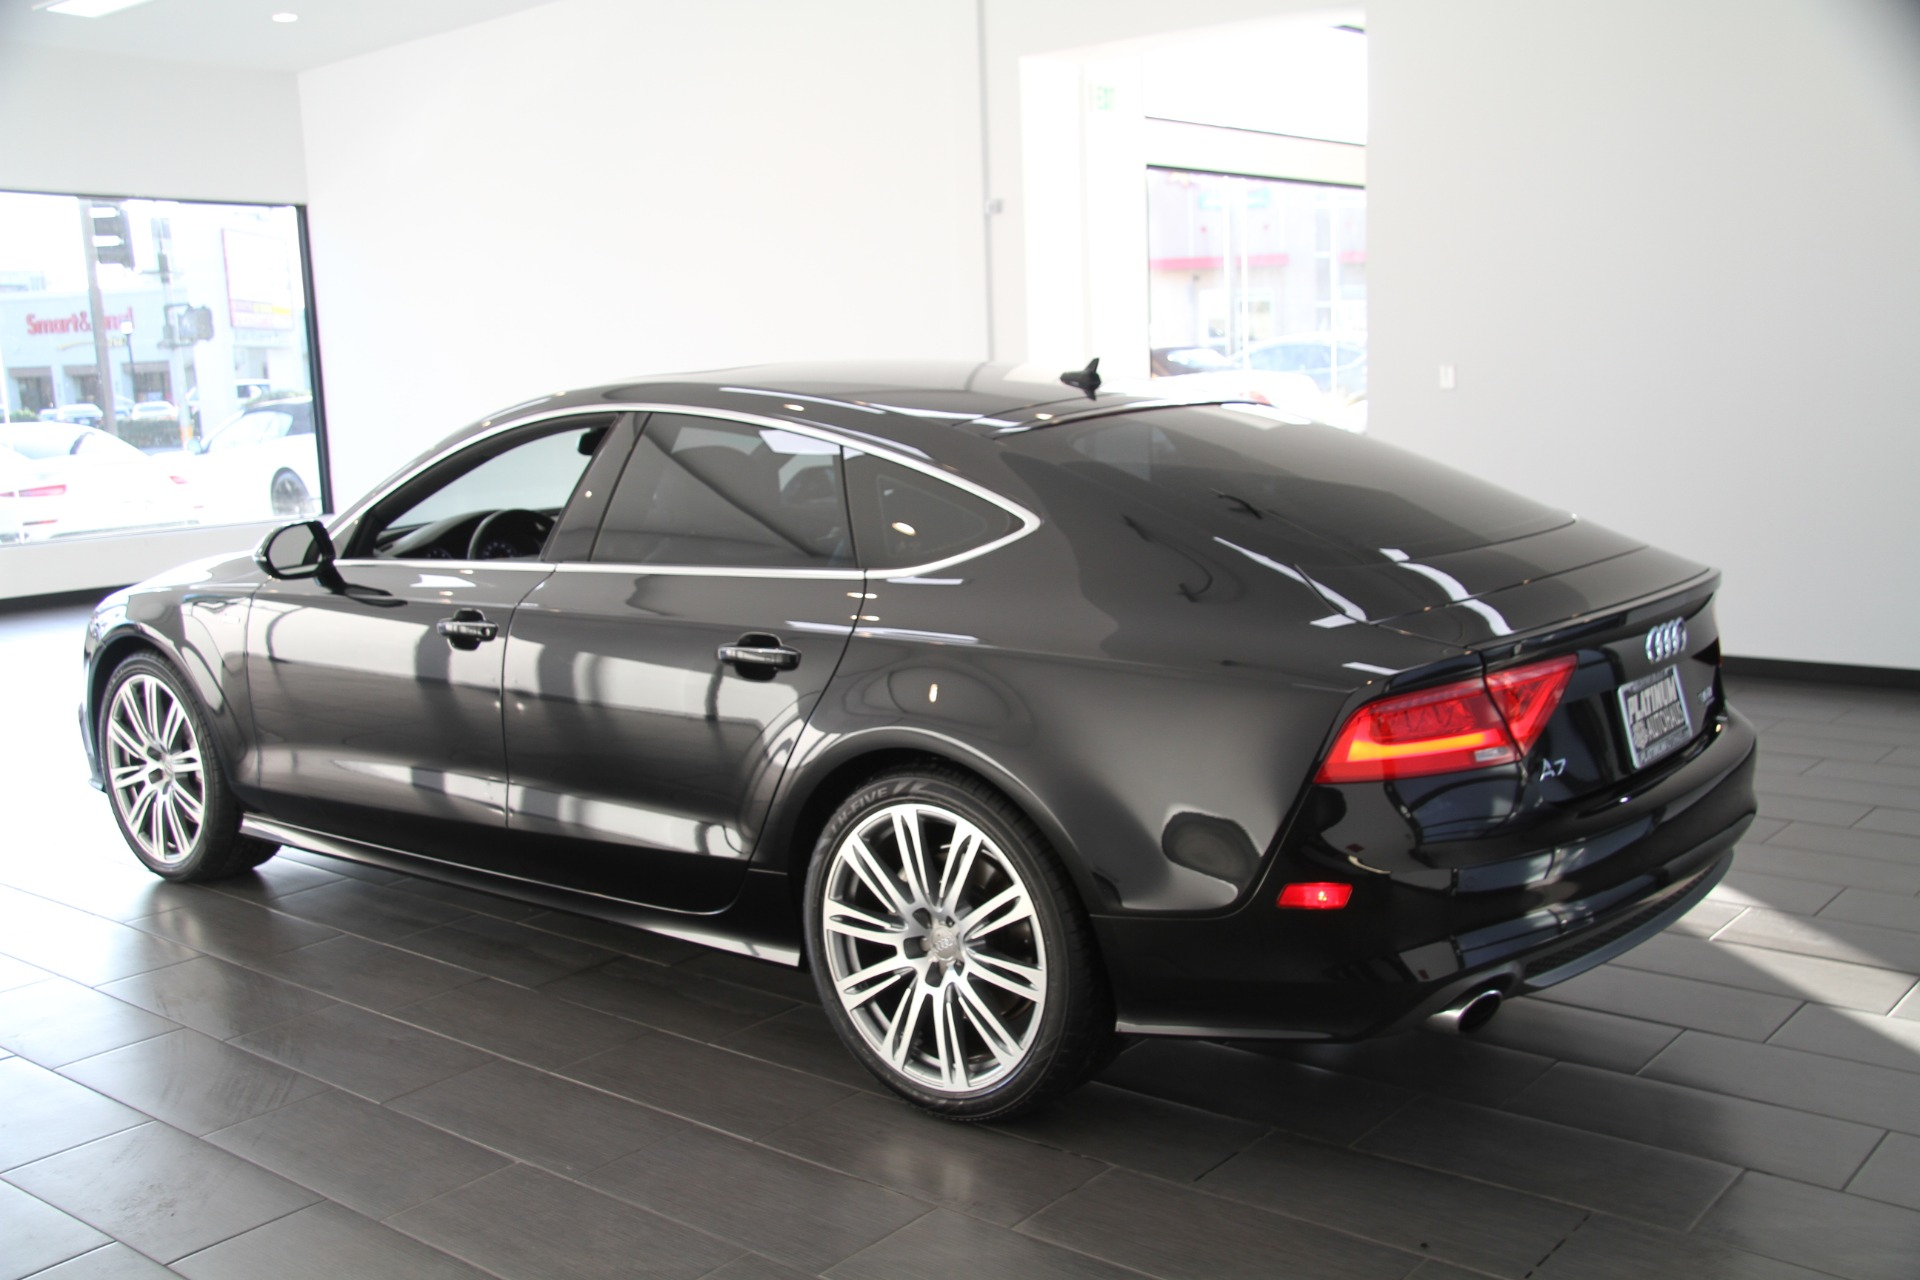 2013 audi a7 3 0t quattro prestige s line stock 6106 for sale near redondo beach ca ca audi. Black Bedroom Furniture Sets. Home Design Ideas